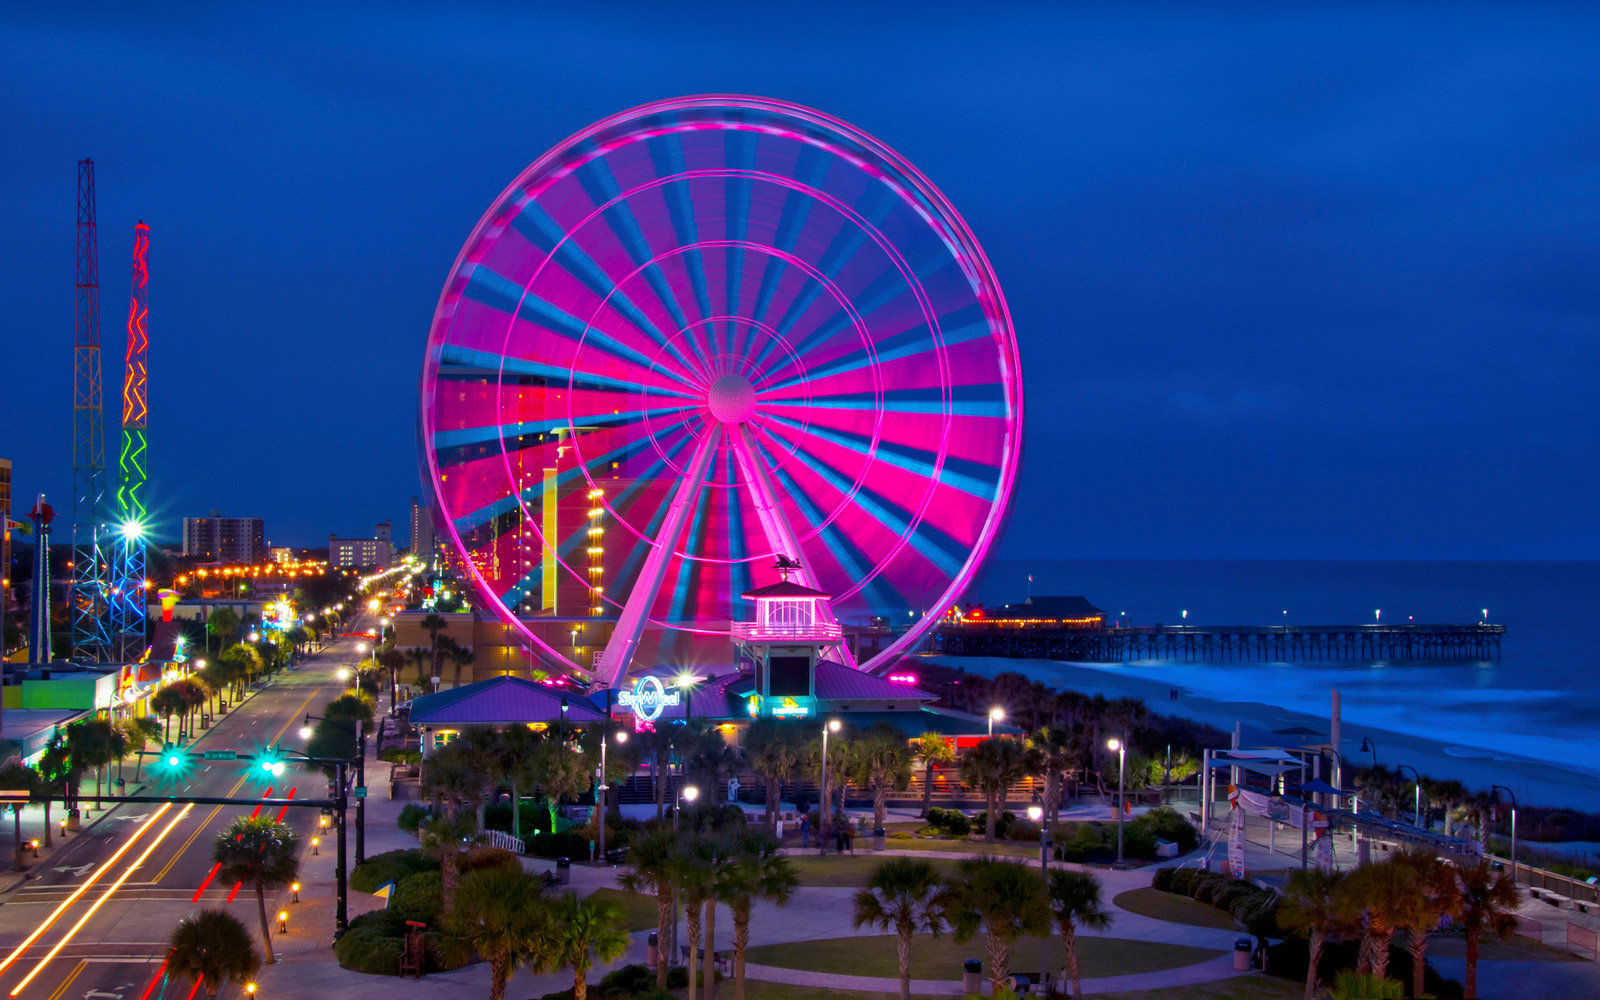 USA, South Carolina, Myrtle Beach, Illuminated Ferris wheel on Grand Strand